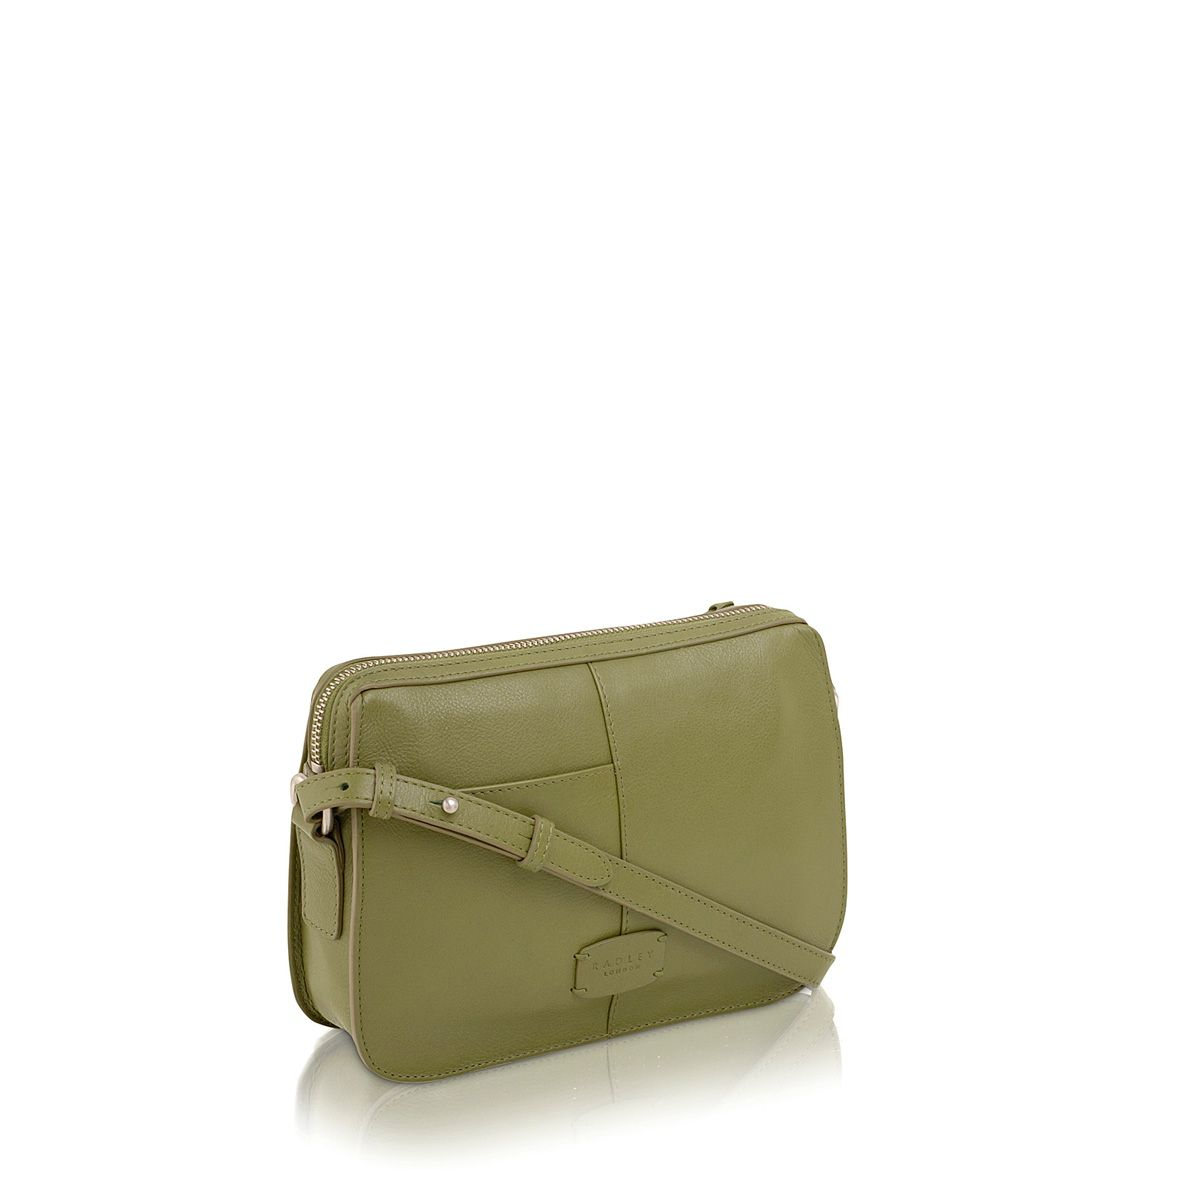 Maiden green small leather cross body bag